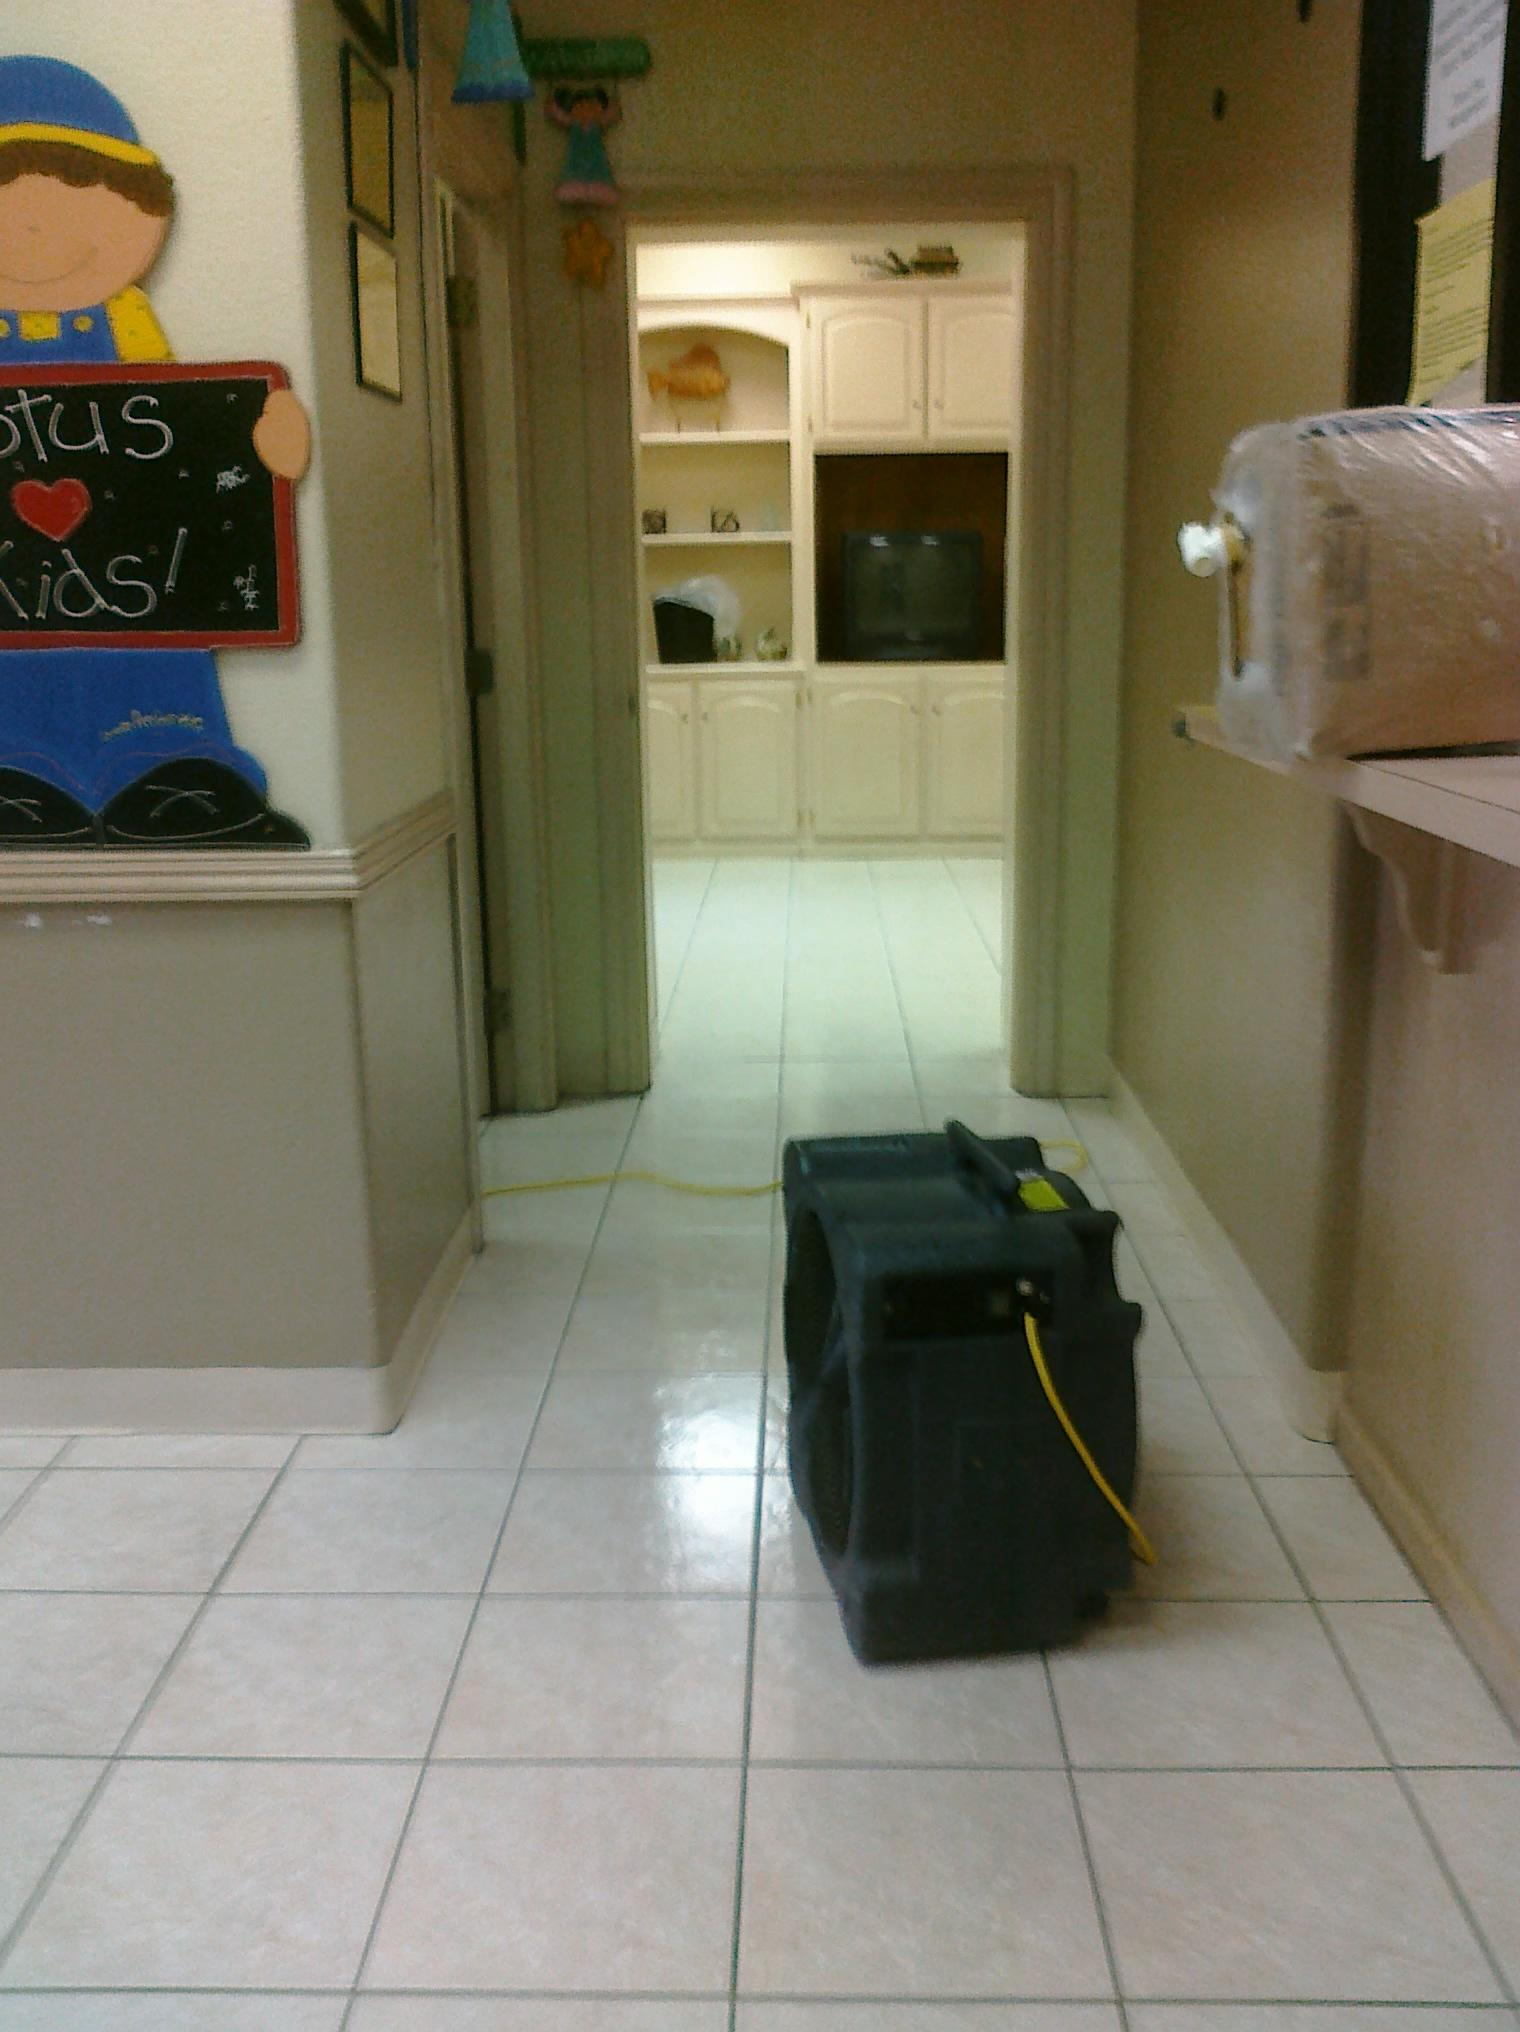 Green Cleaning Services LLC image 20